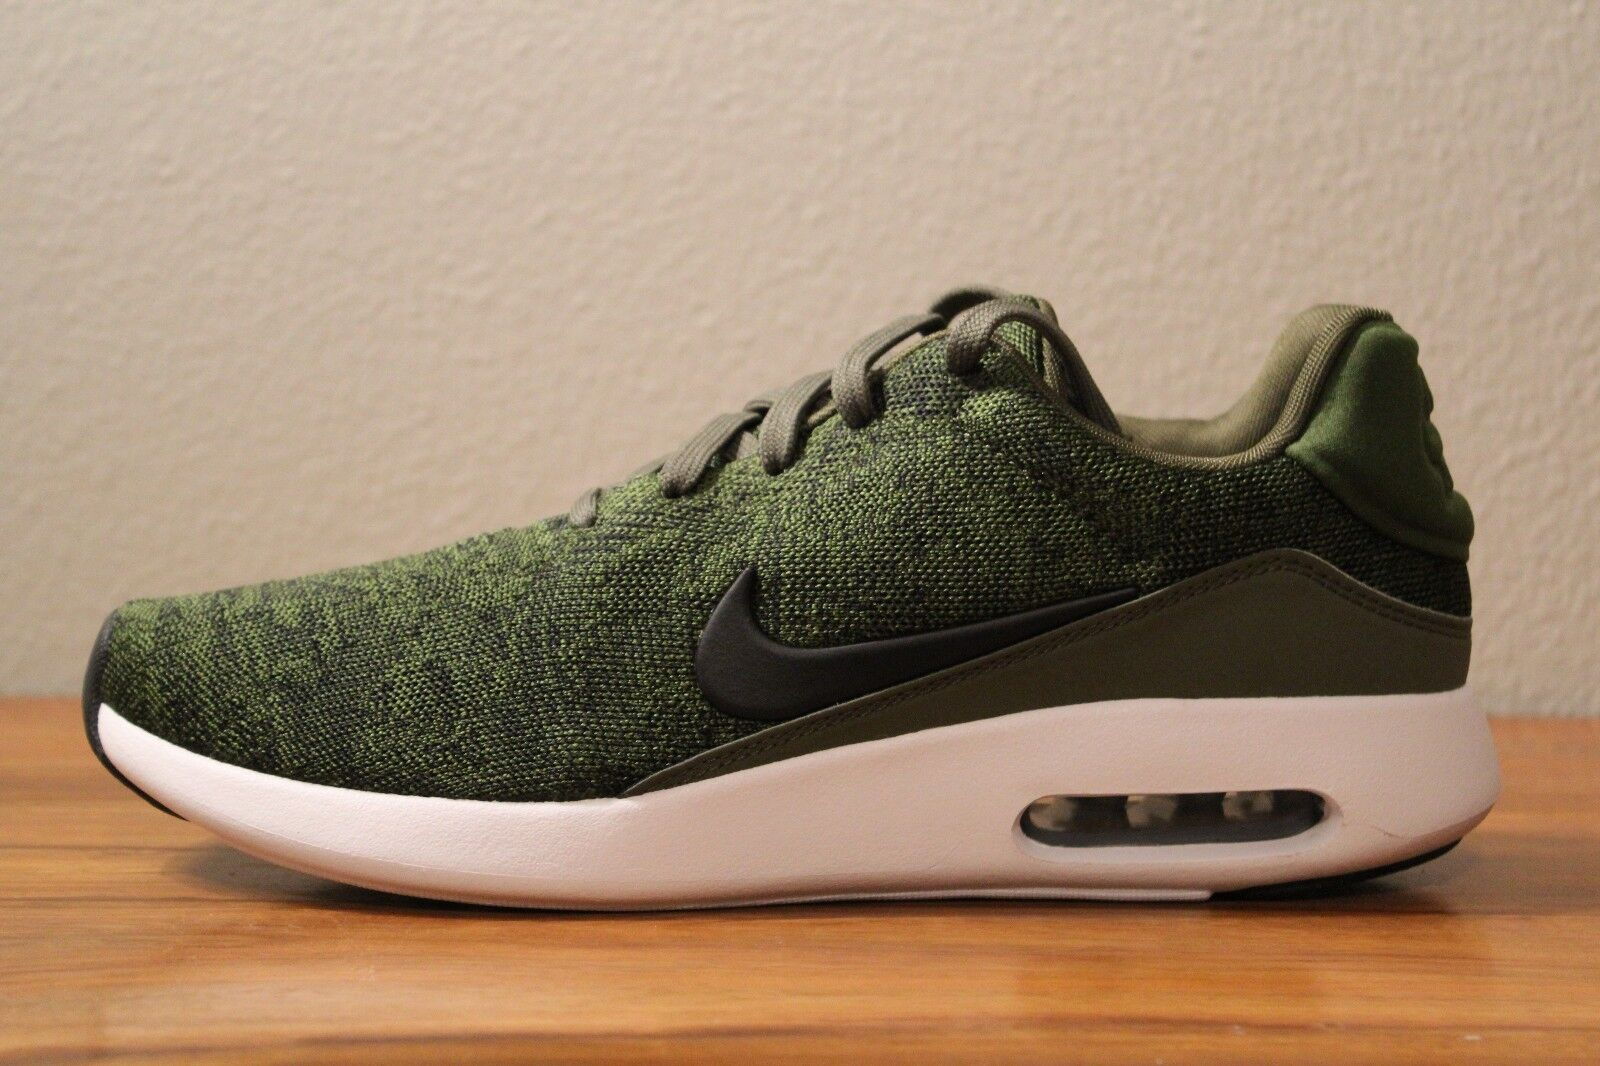 16 Sizes New Nike Air Max Modern Flyknit Green Men's Sizes 16 9.5, 10 876066 300 3f3435